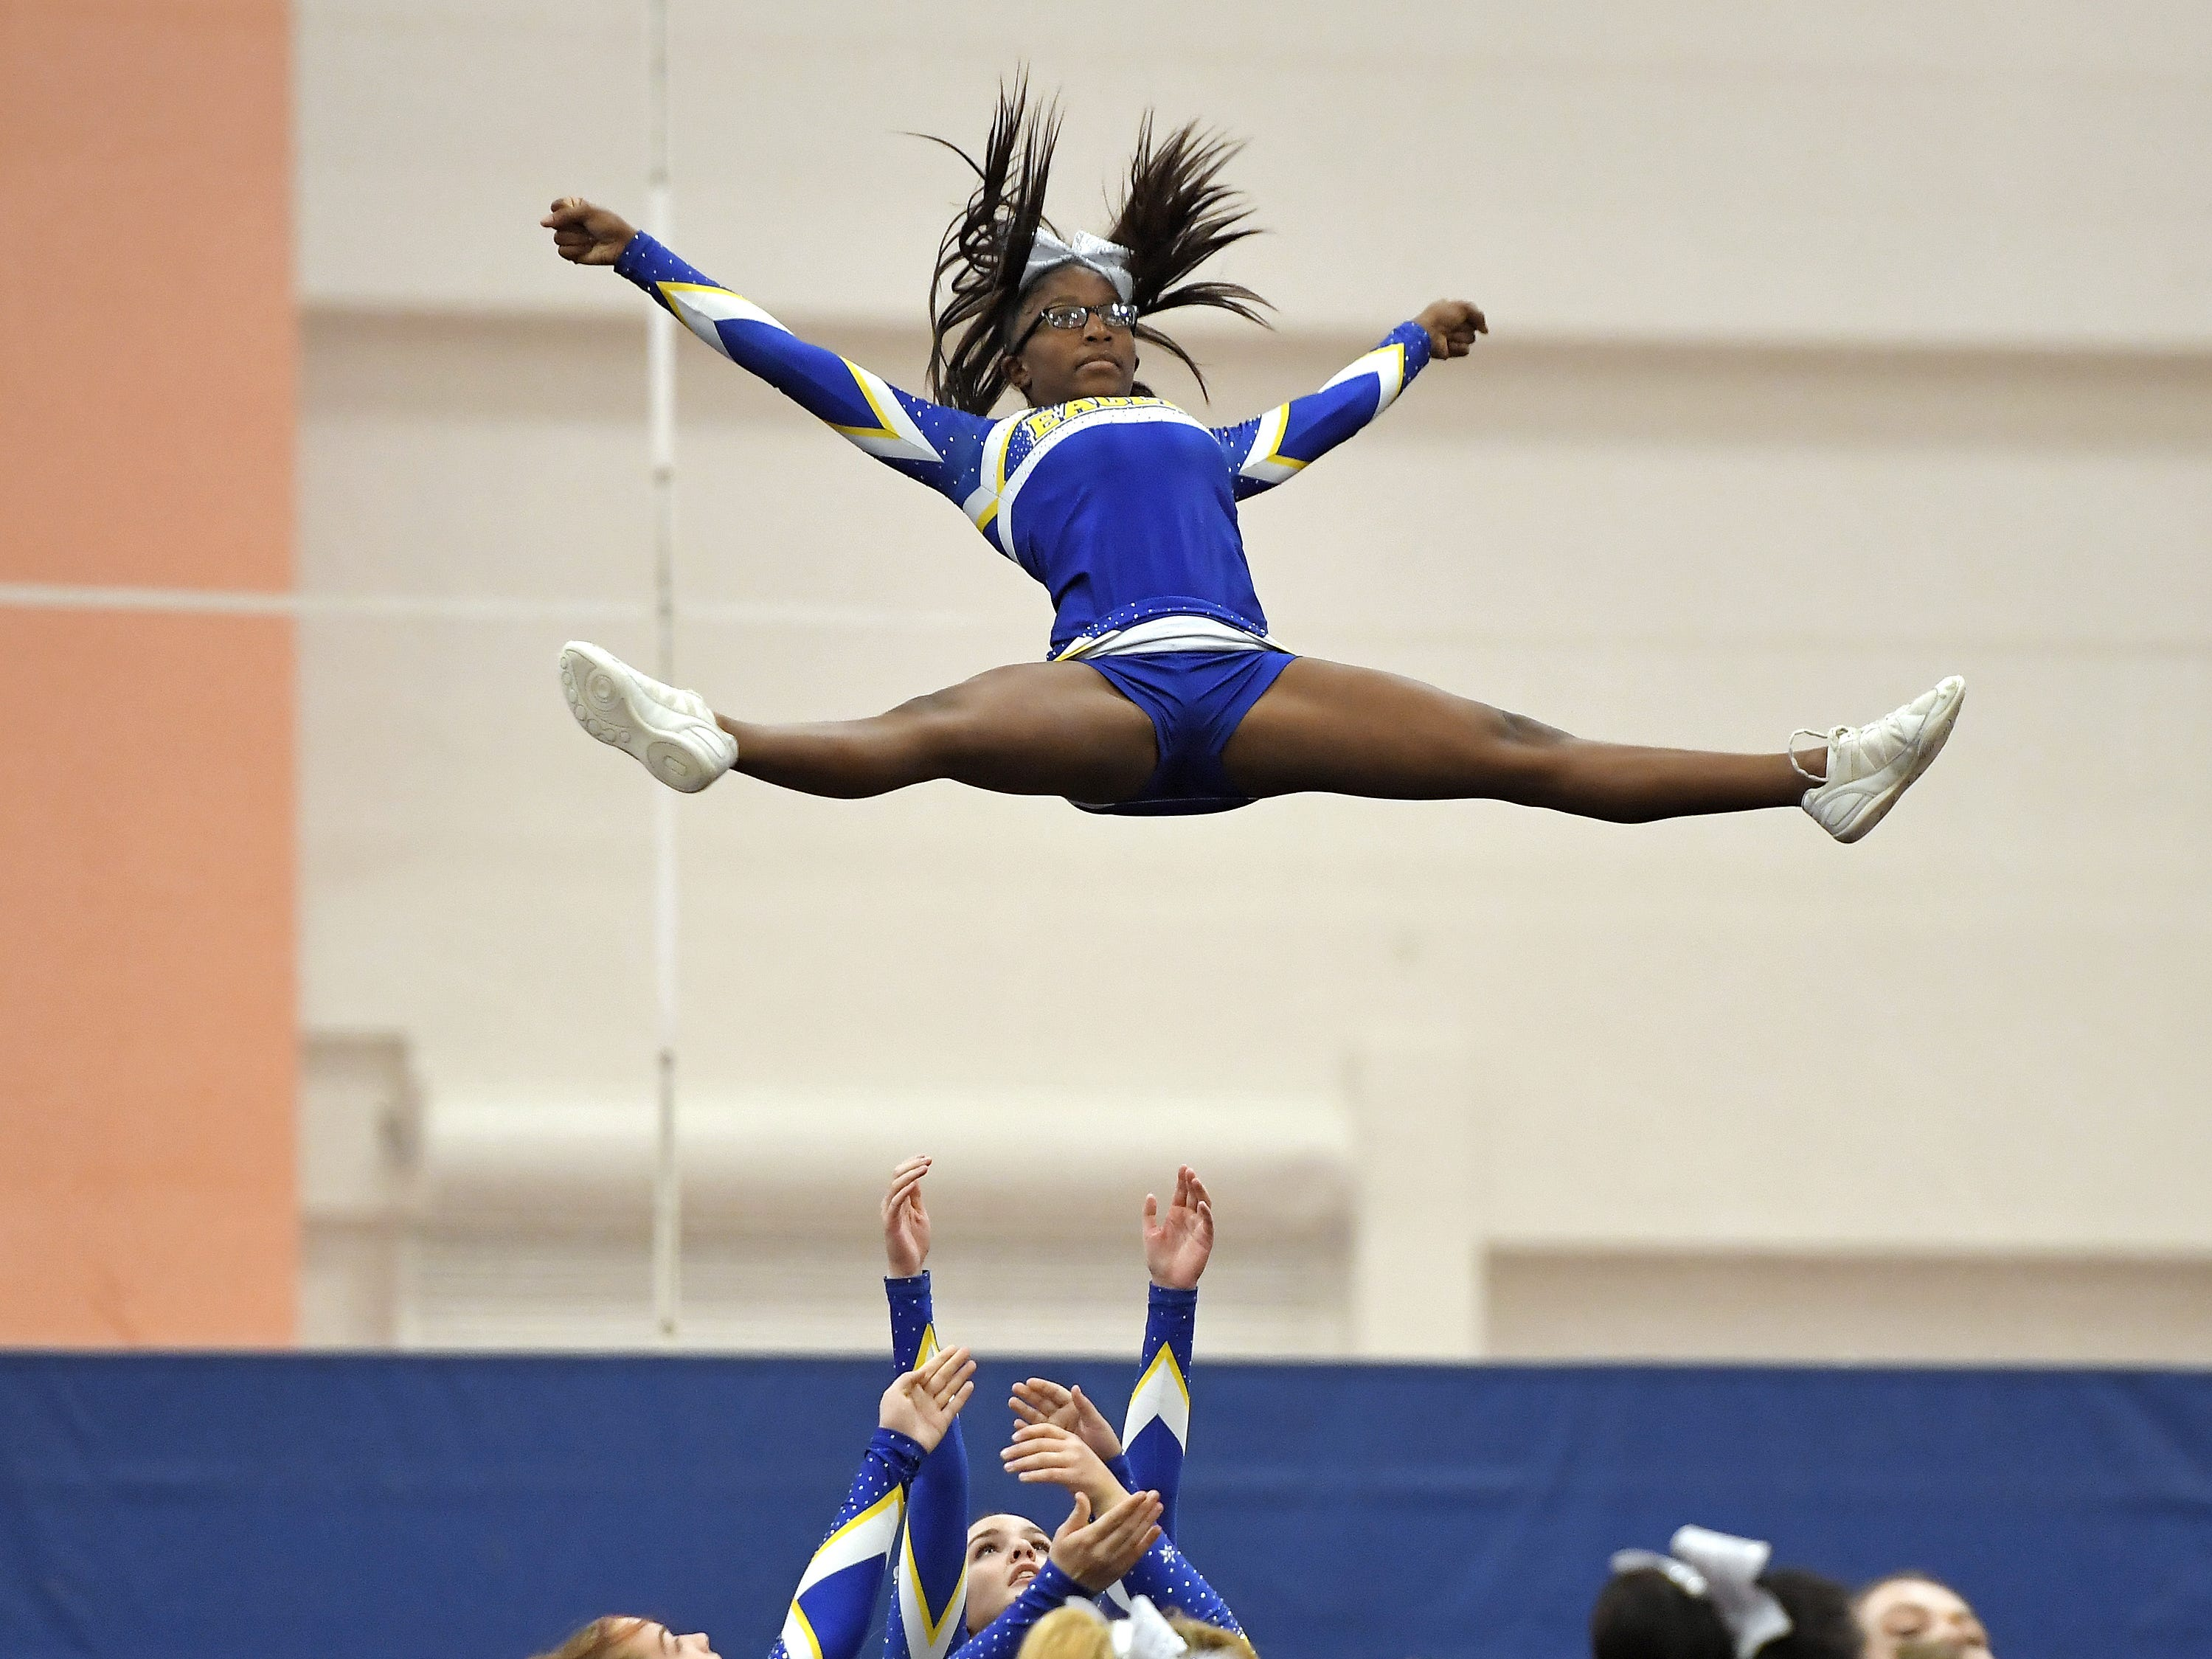 Irondequoit cheerleaders perform their routine during the Section V Fall Cheerleading Championships at RIT, Saturday, Oct. 27, 2018.